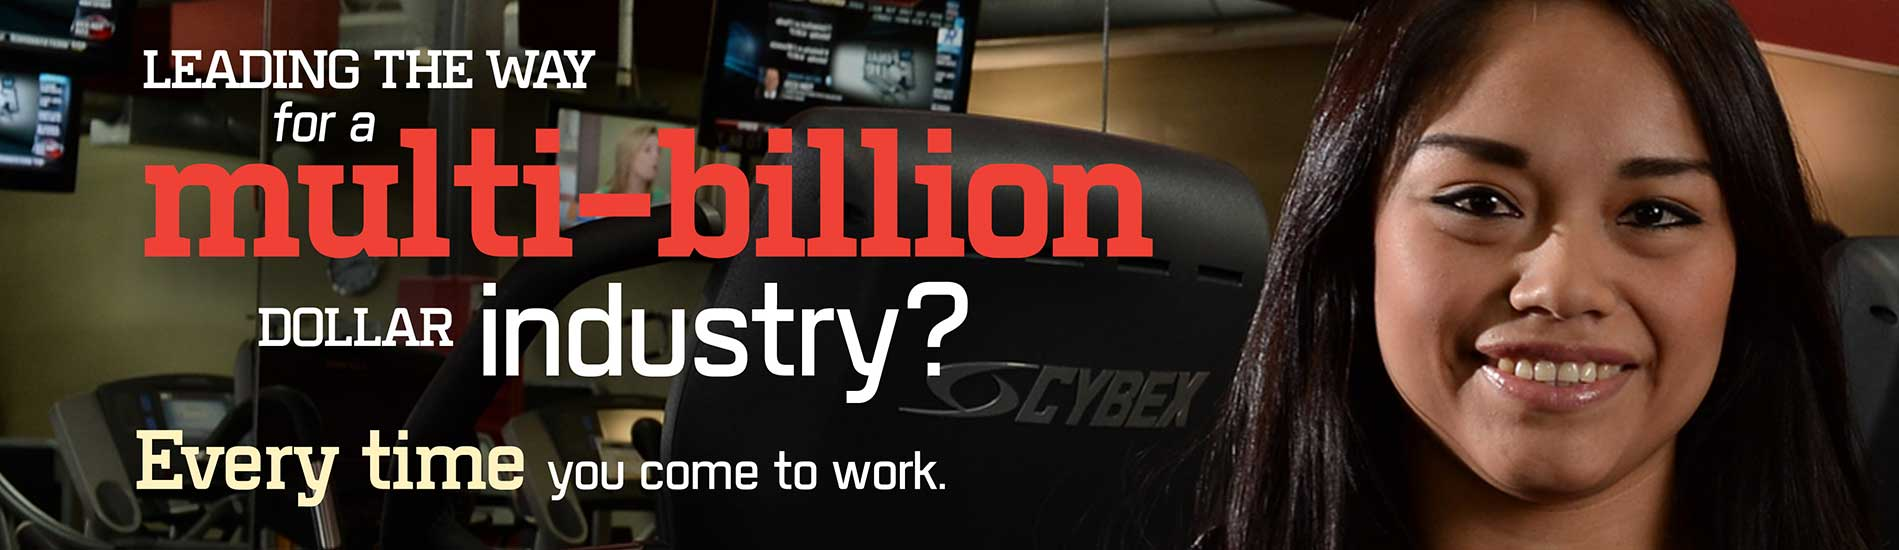 Leading the way for a multi-billion dollar industry? Every time you come to work.